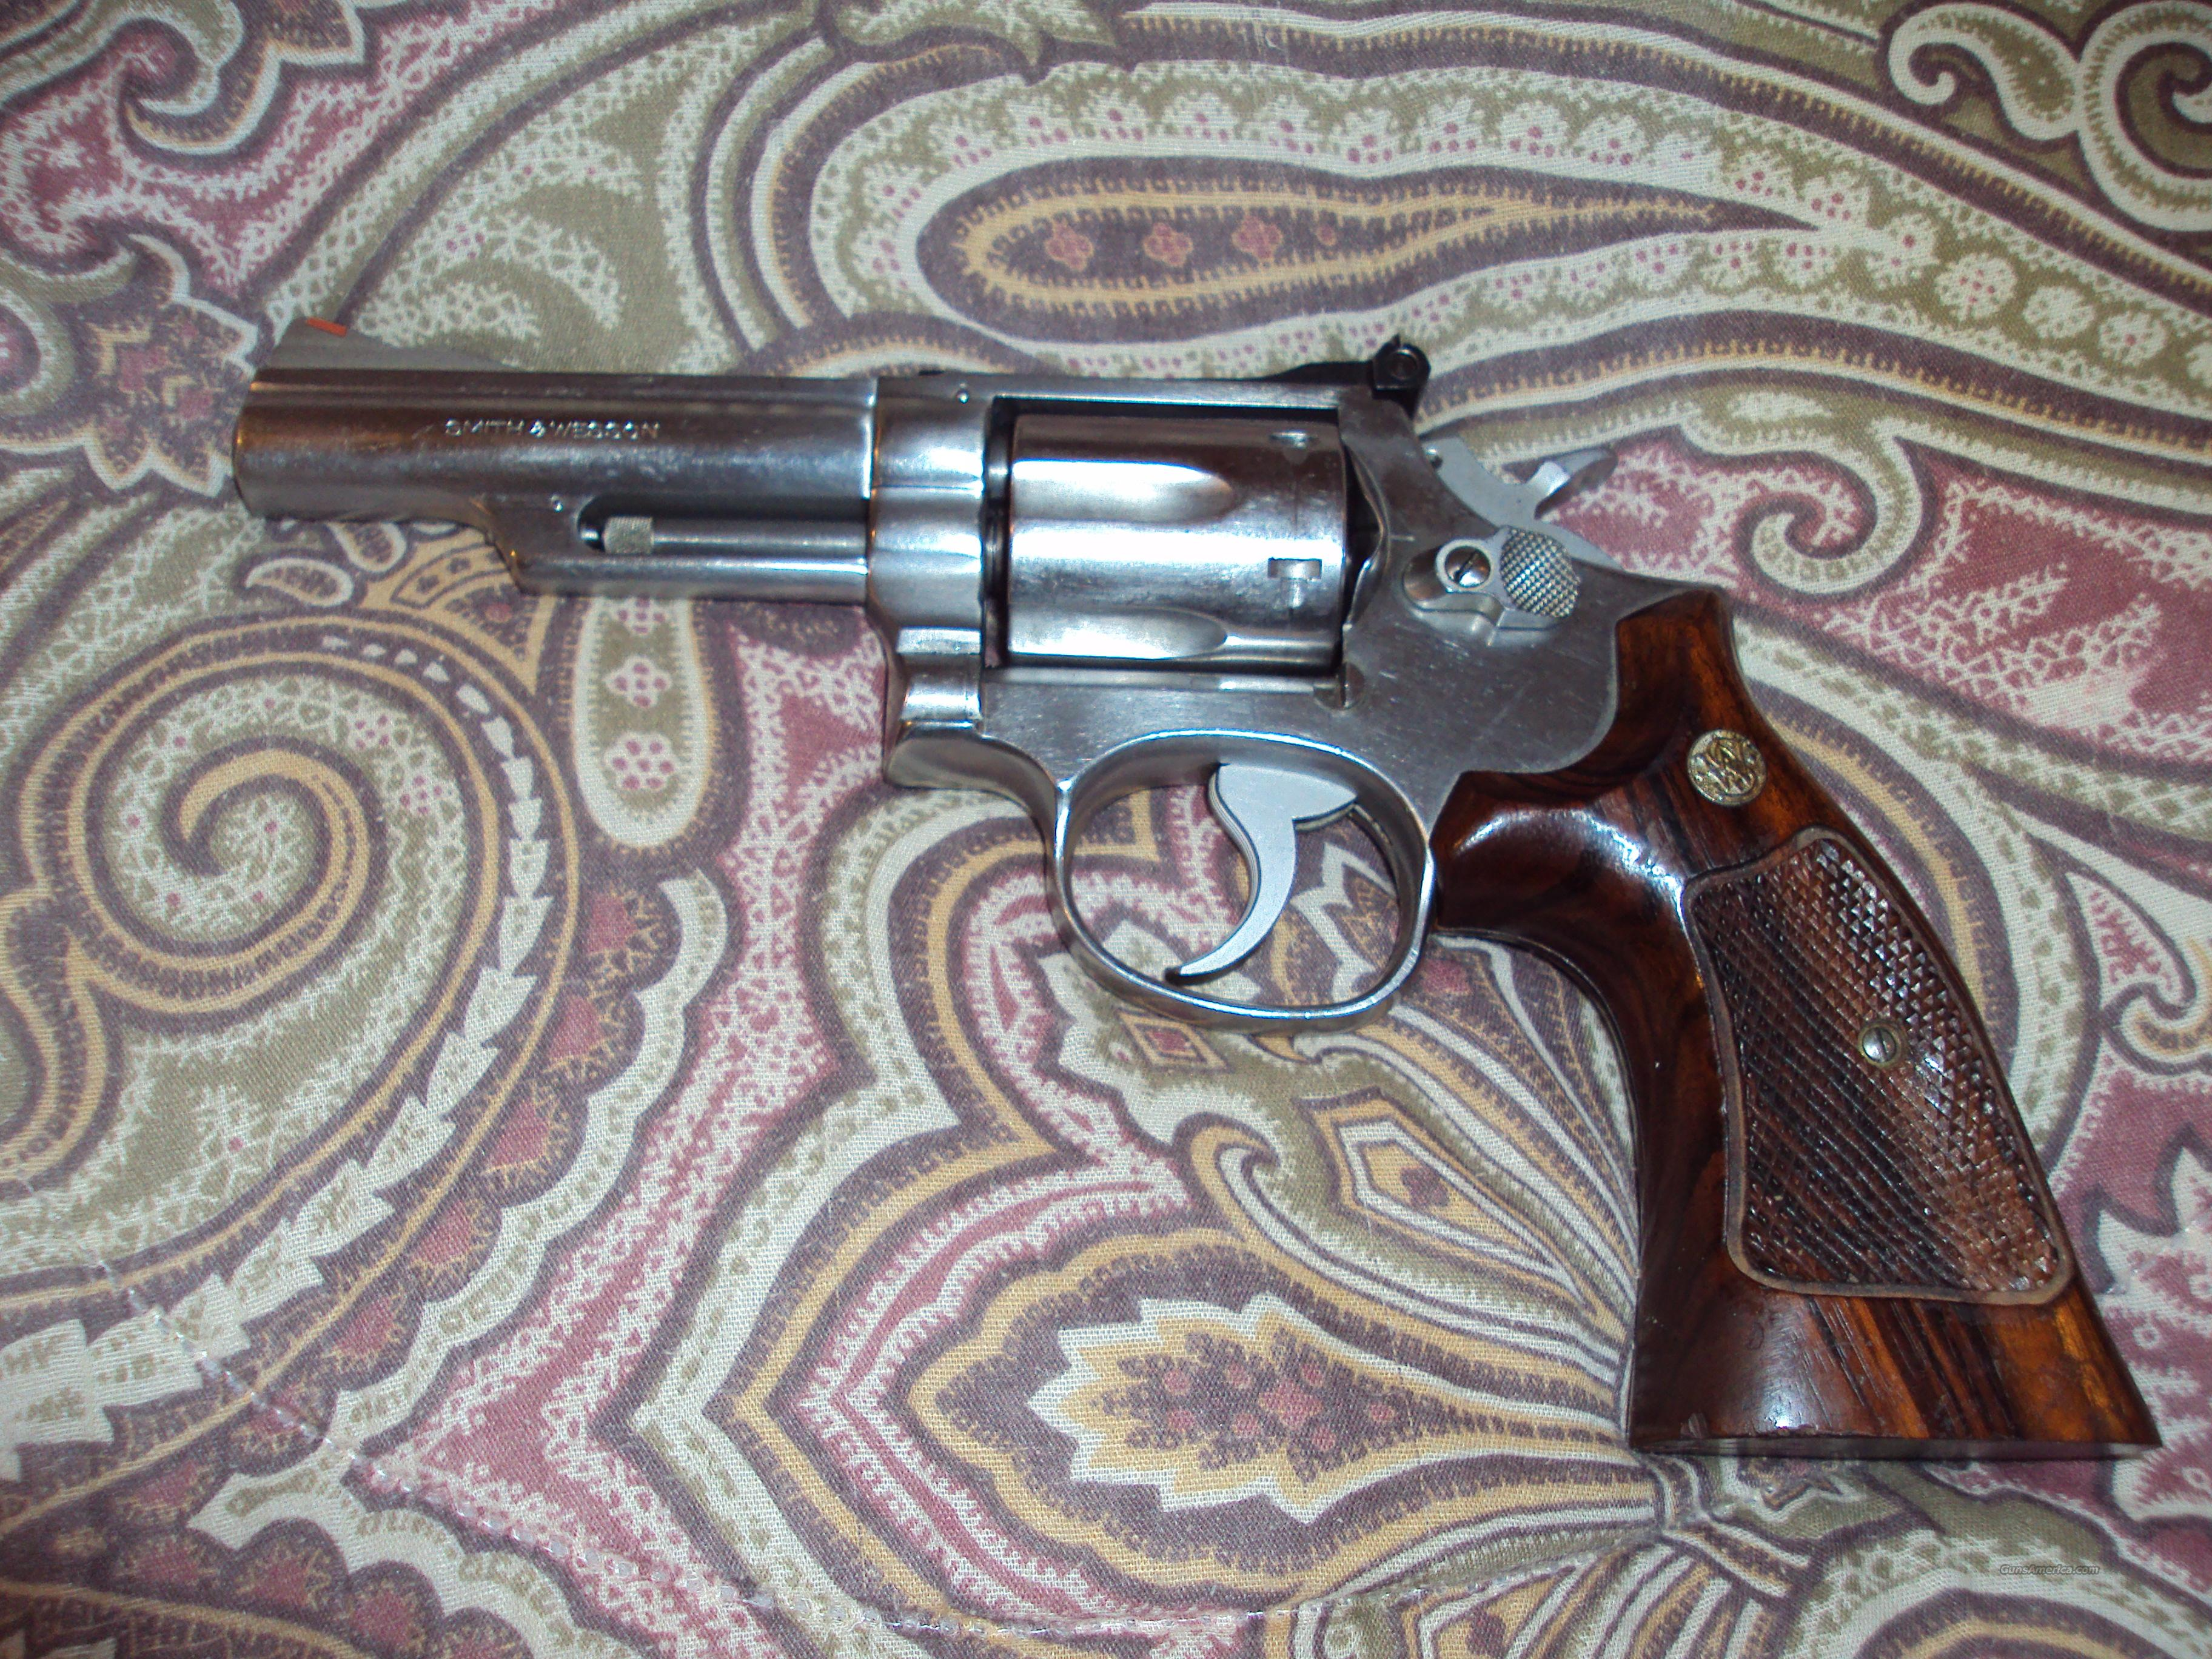 Smith & Wesson .357 Magnum  Guns > Pistols > Smith & Wesson Revolvers > Full Frame Revolver